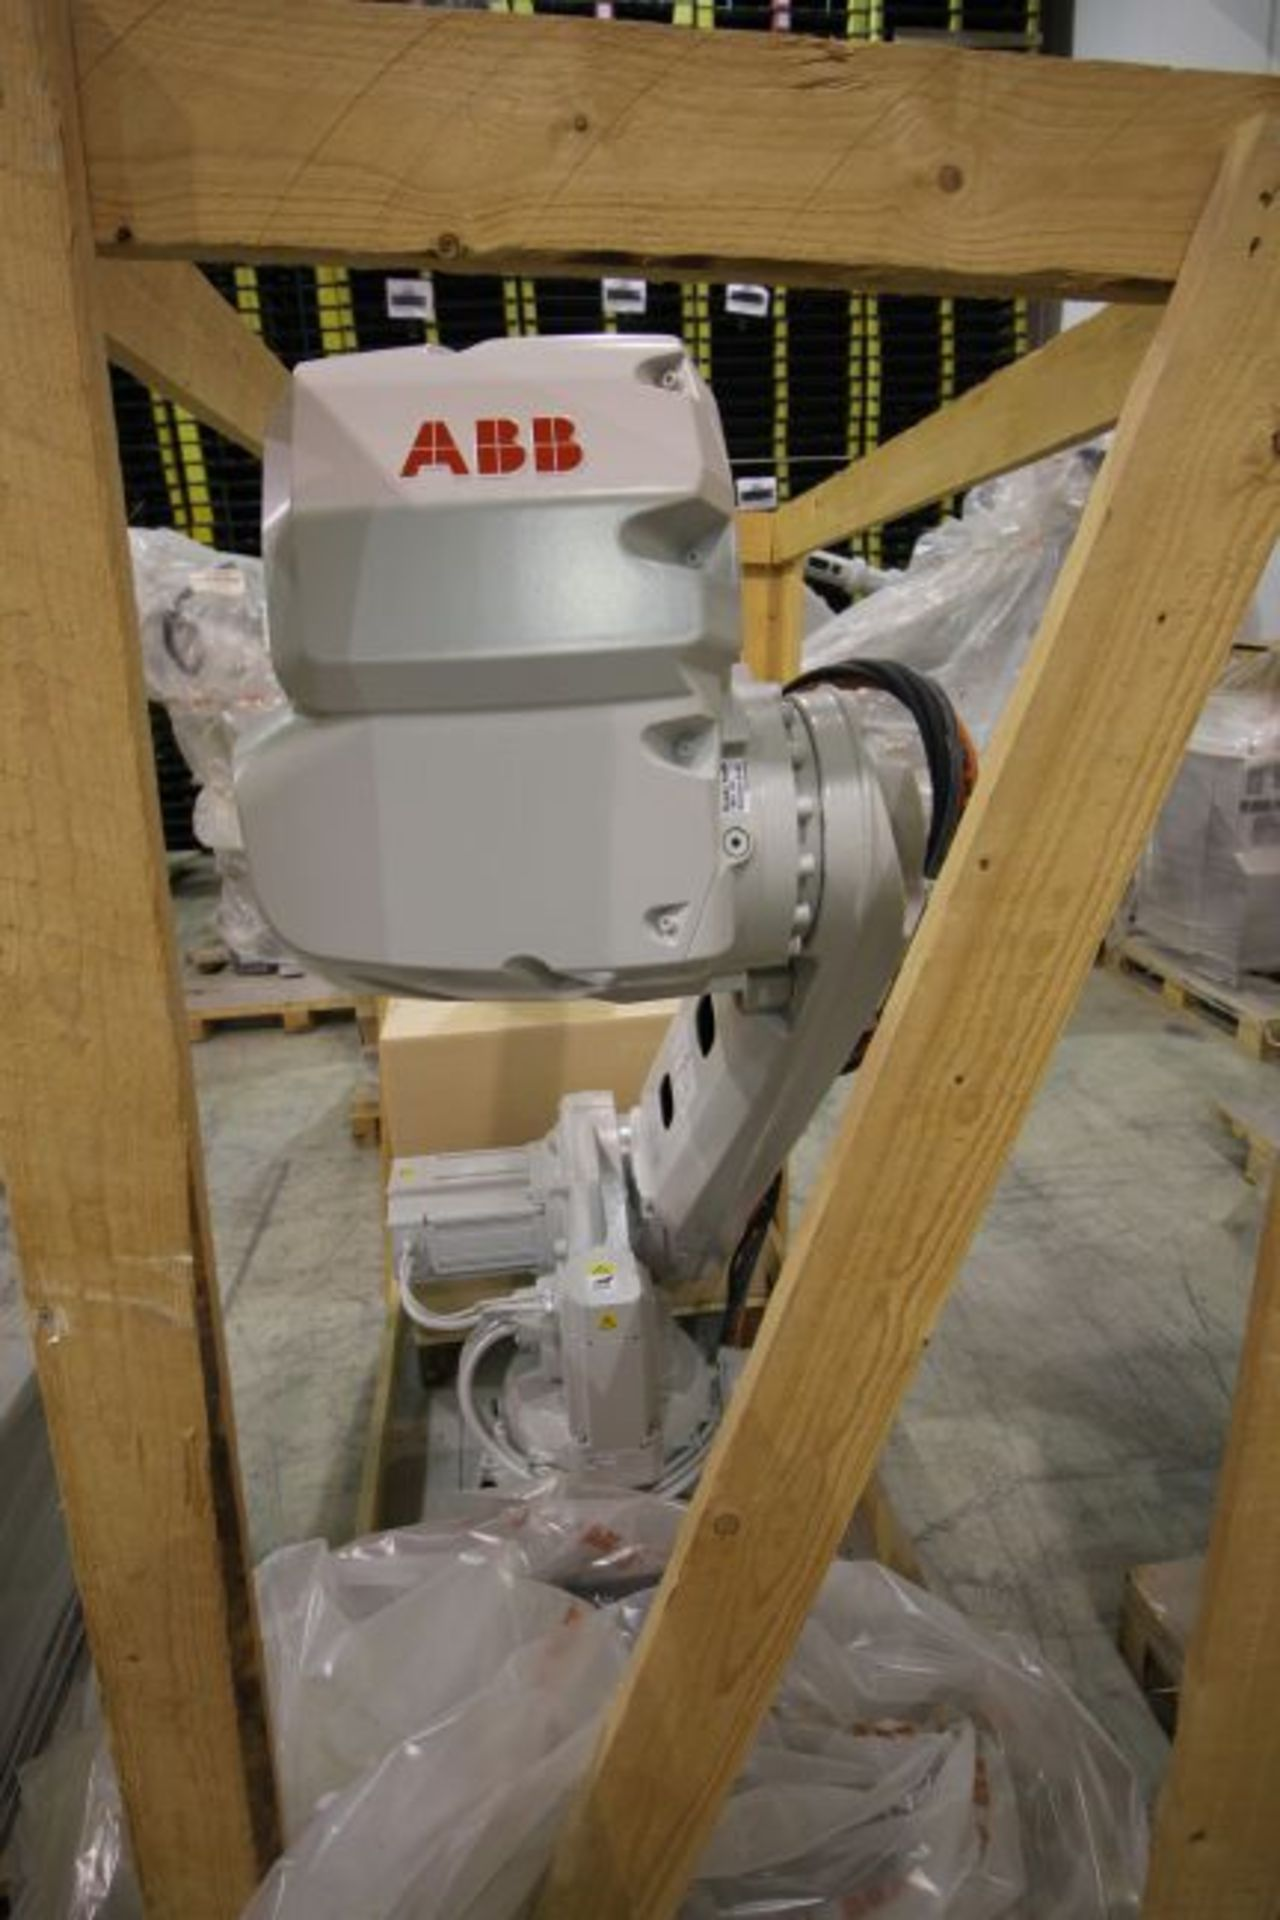 (NEW) ABB ROBOT IRB 4600 2.55/40KG WITH IRC5 CONTROLS, YEAR 2014, SN 101900 TEACH PENDANT& CABLES - Image 4 of 9